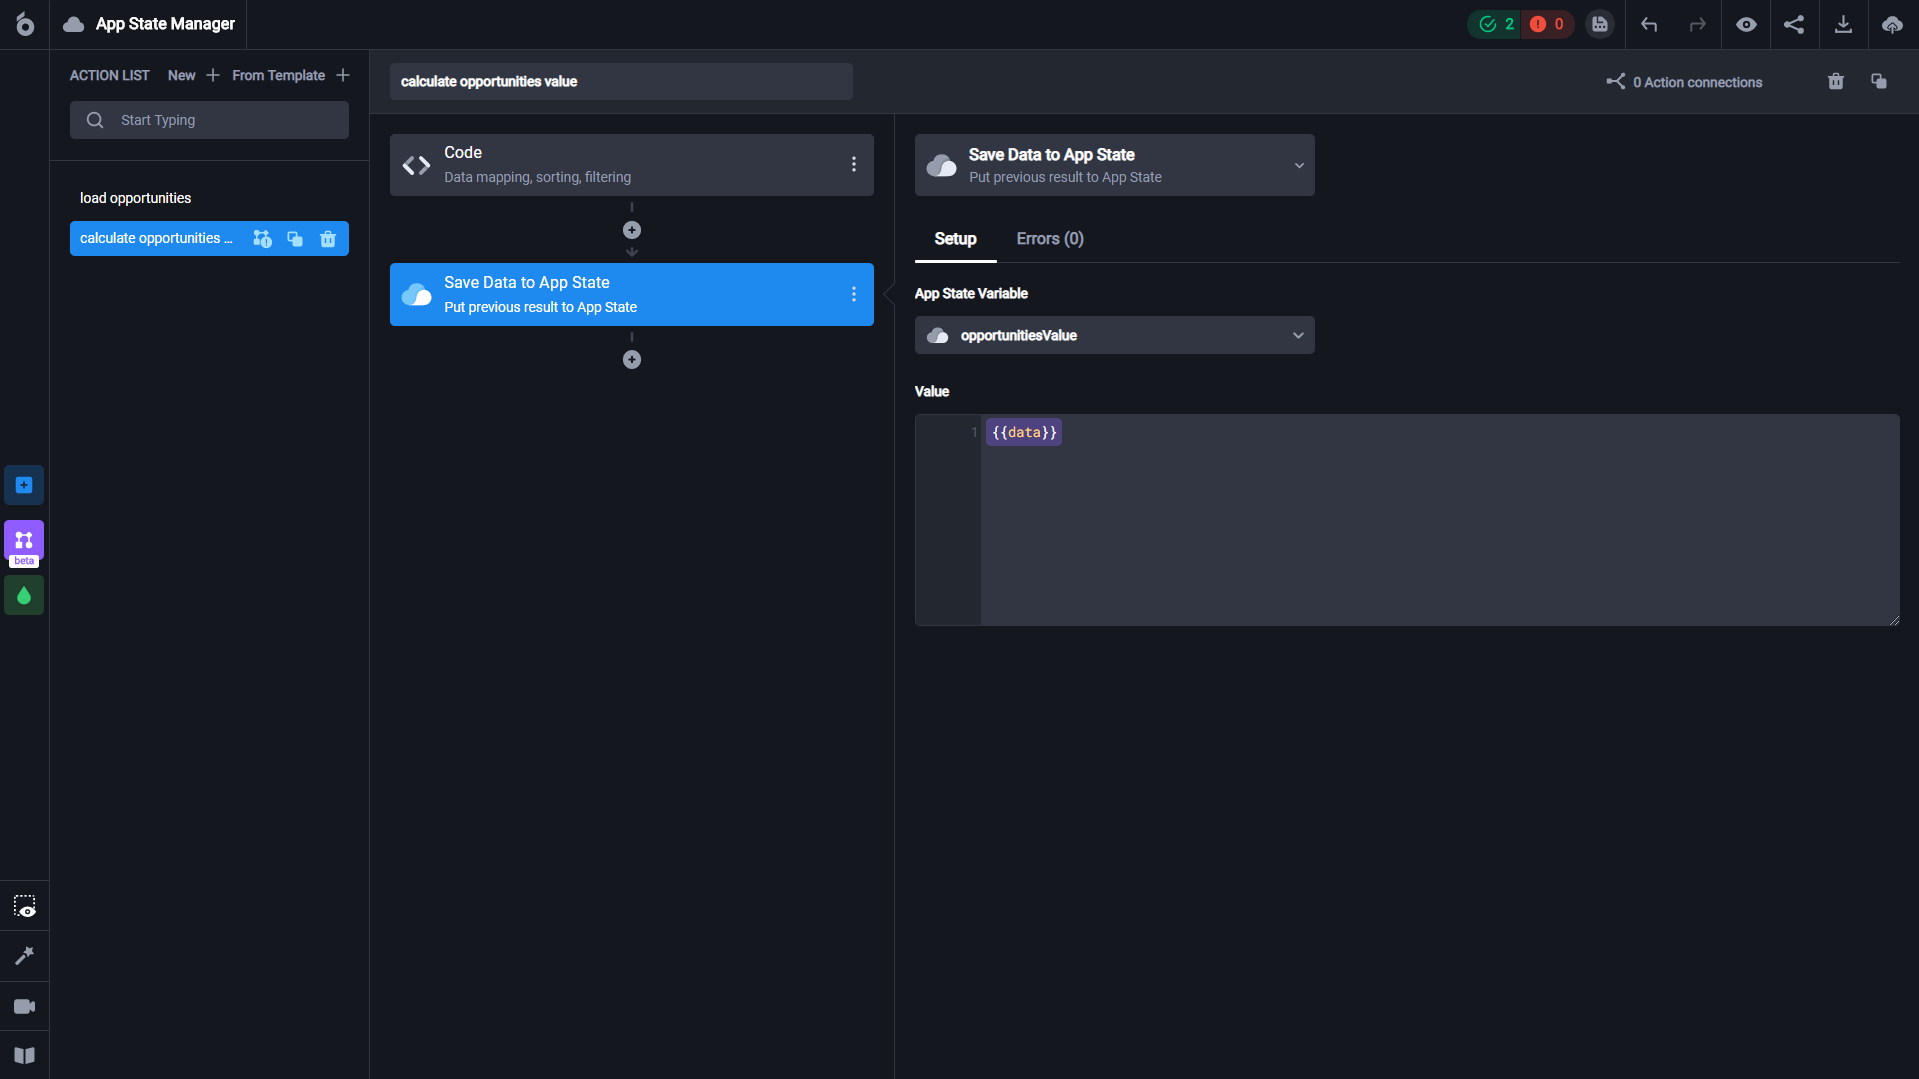 How to build a dashboard and use the data connection feature to connect Airtable data using the UI Bakery web app creator